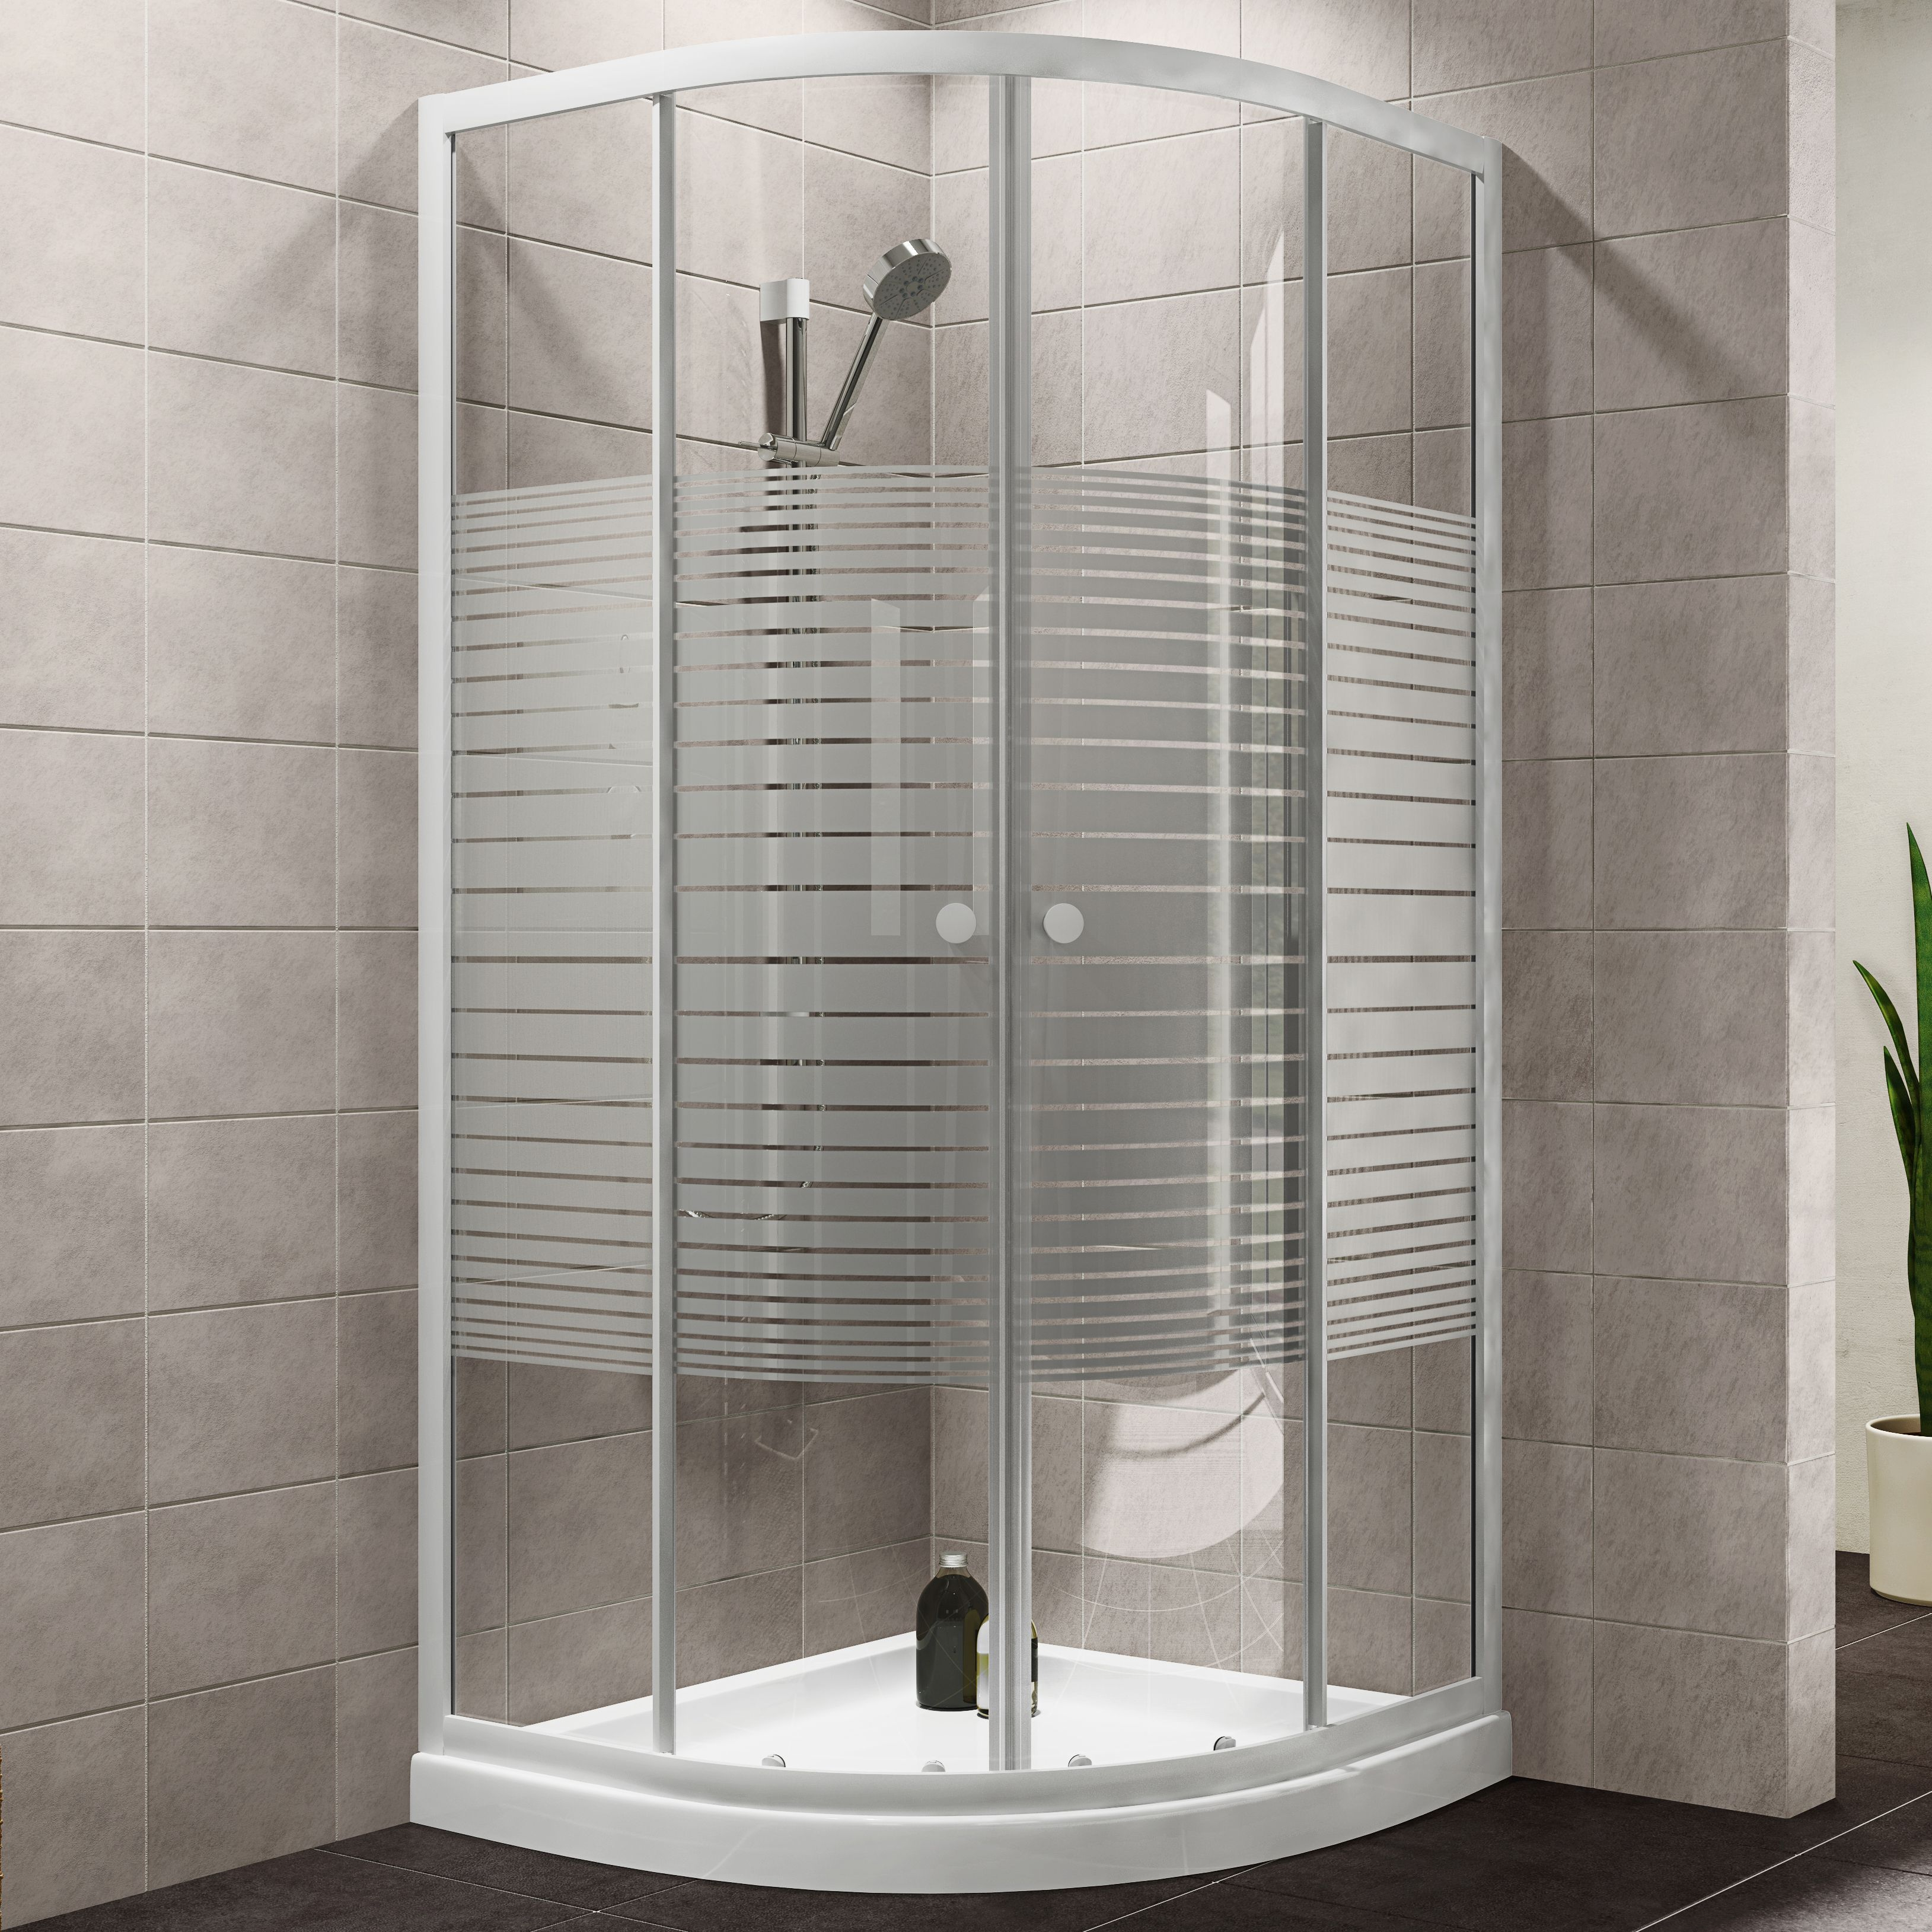 Plumbsure Quadrant Shower Enclosure with White Frame   Double Sliding Doors   W 800mm  D 800mm   Departments   DIY at B Q. Plumbsure Quadrant Shower Enclosure with White Frame   Double